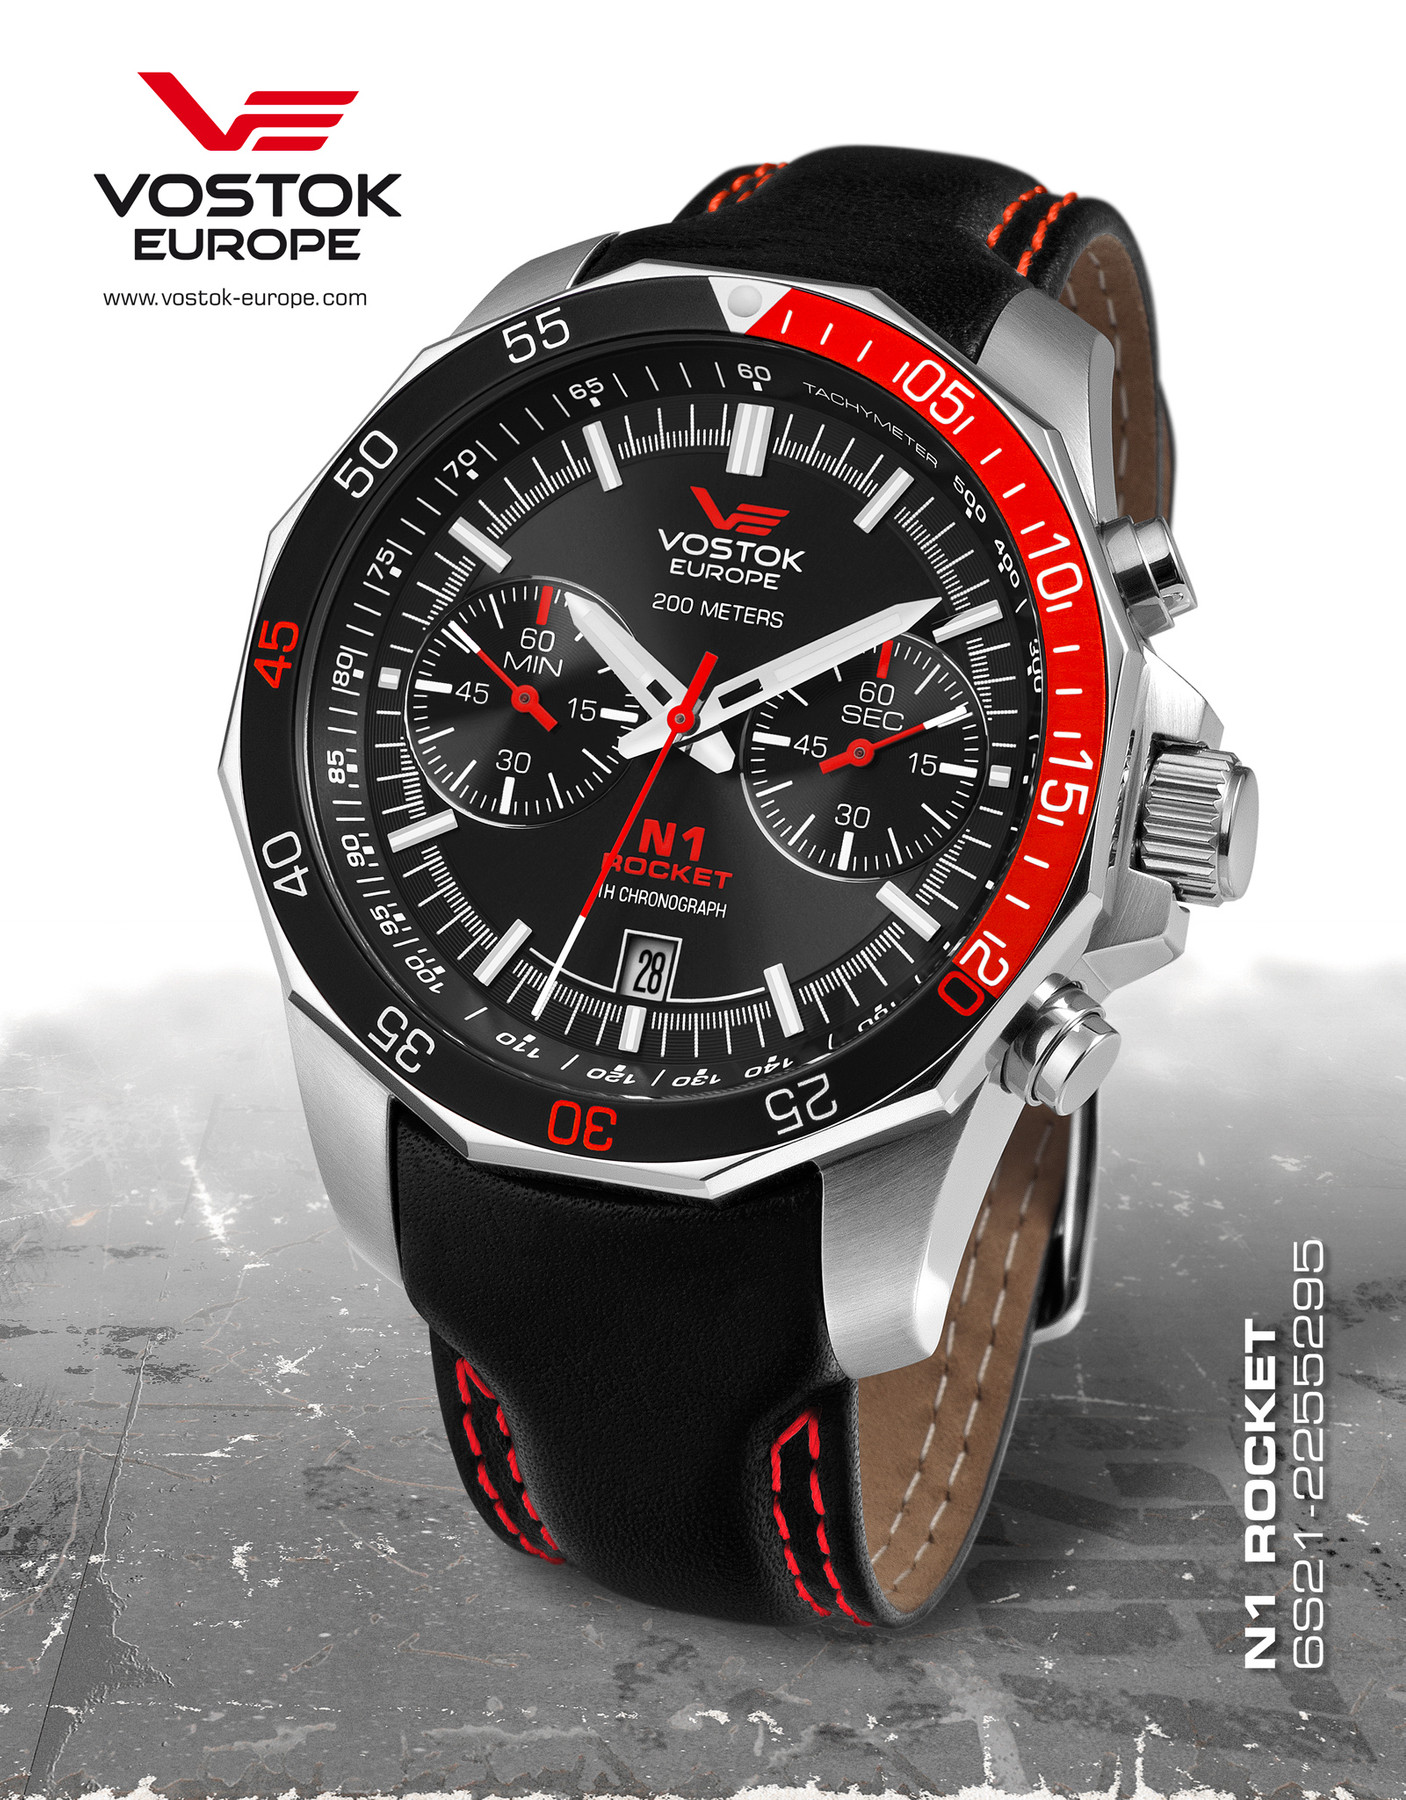 Bild 2 Vostok Europe Rocket N1 6S21-2255295 Chronograph